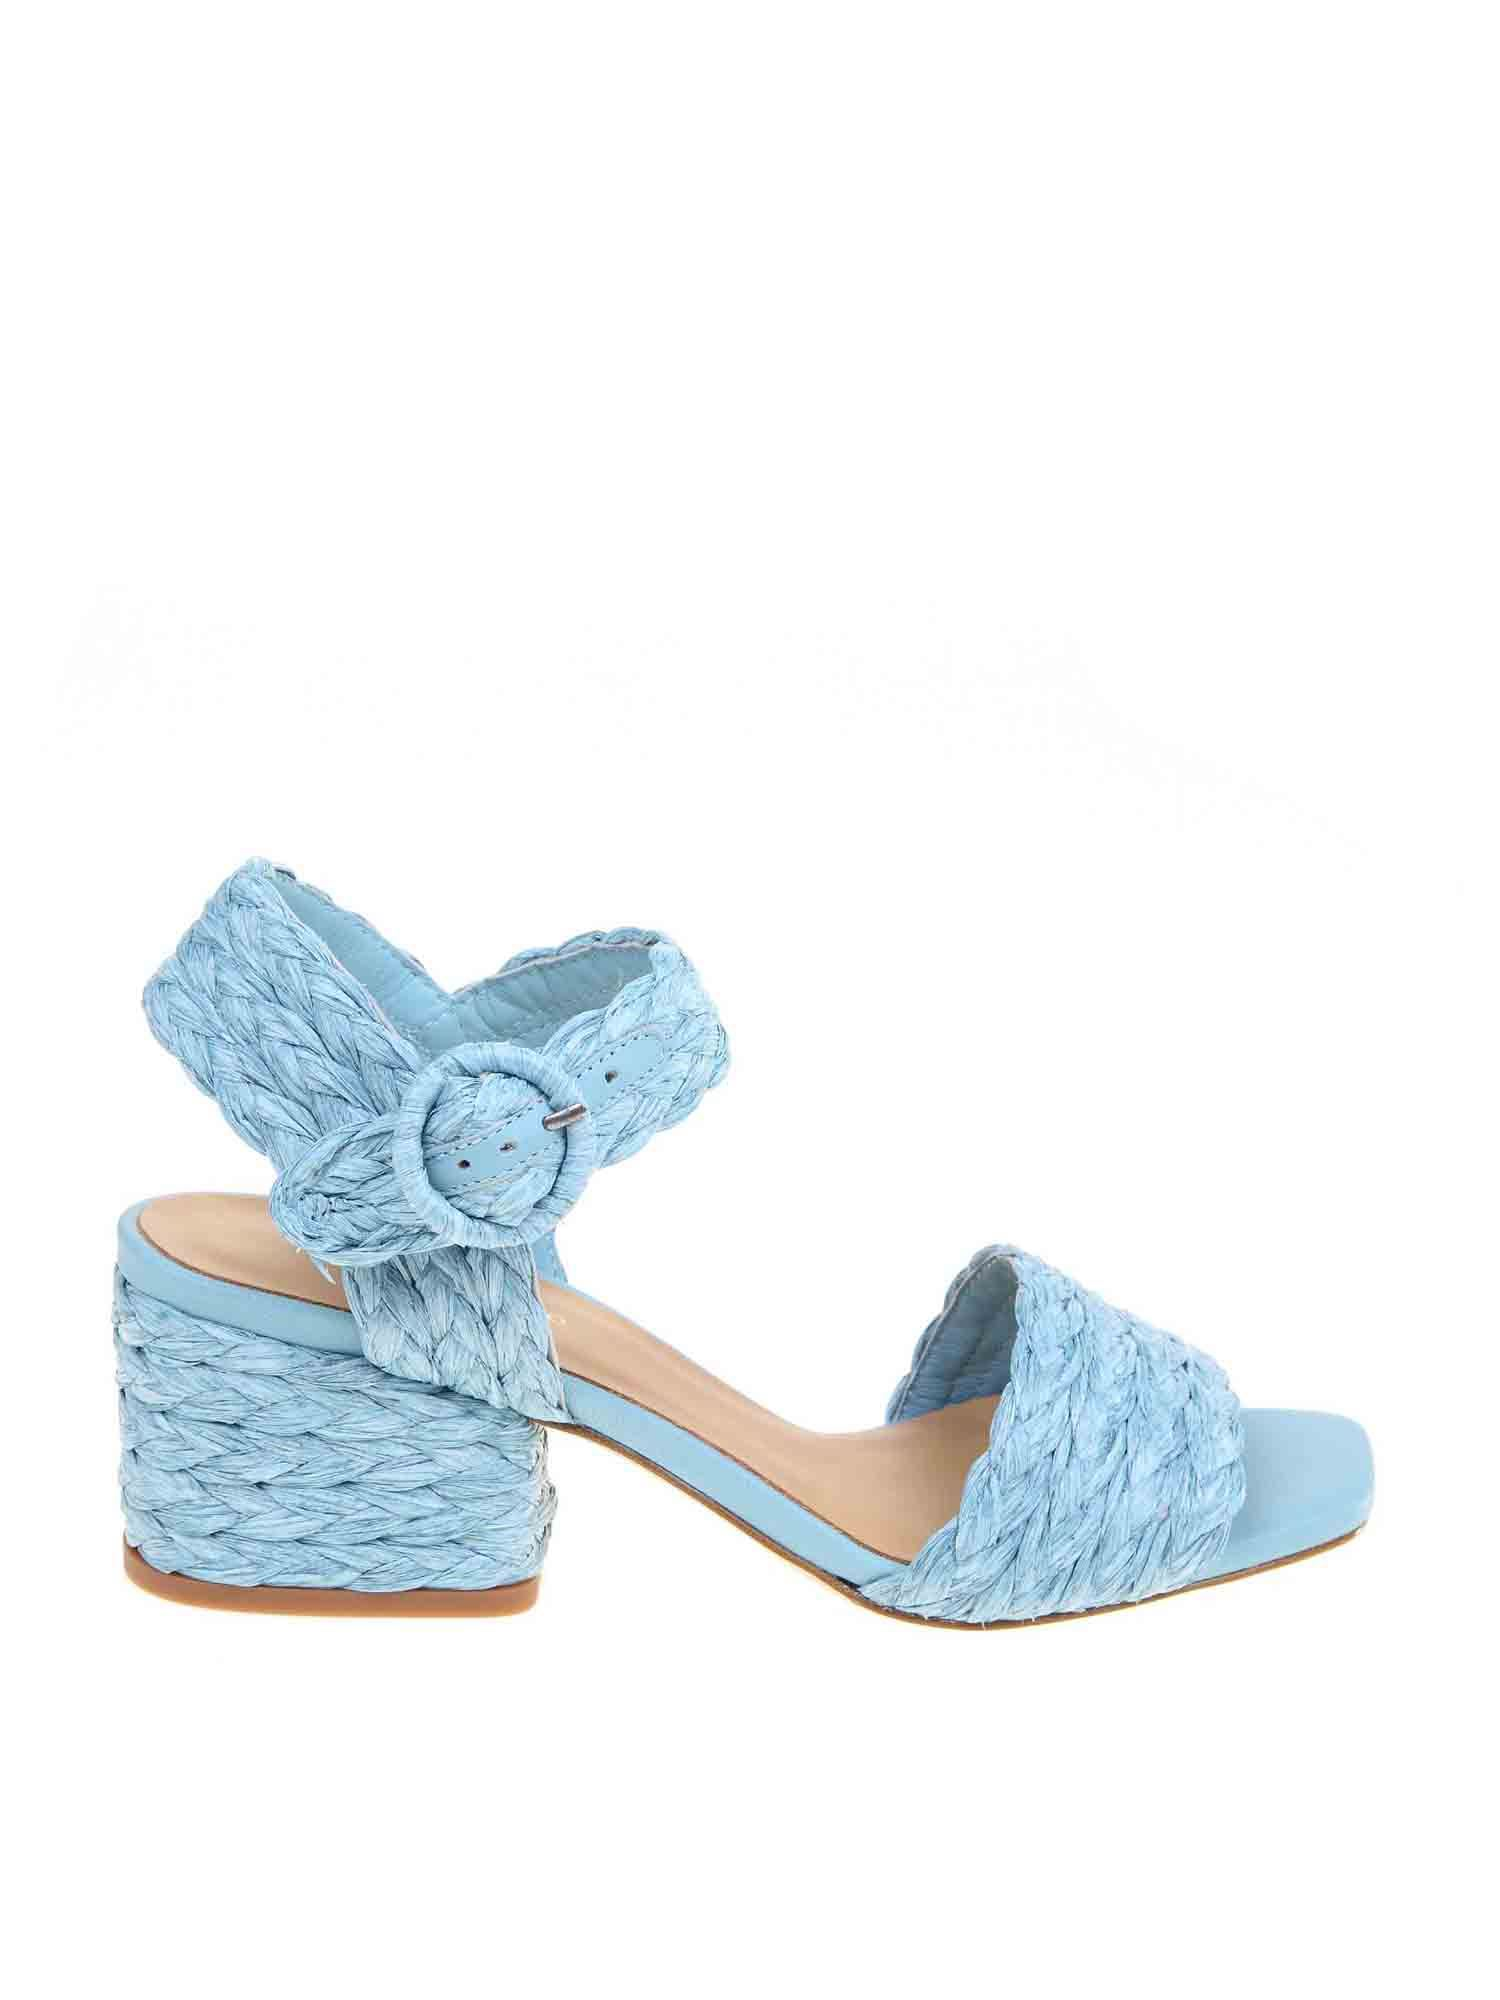 Paloma Barceló RAFFIA SANDALS IN TURQUOISE